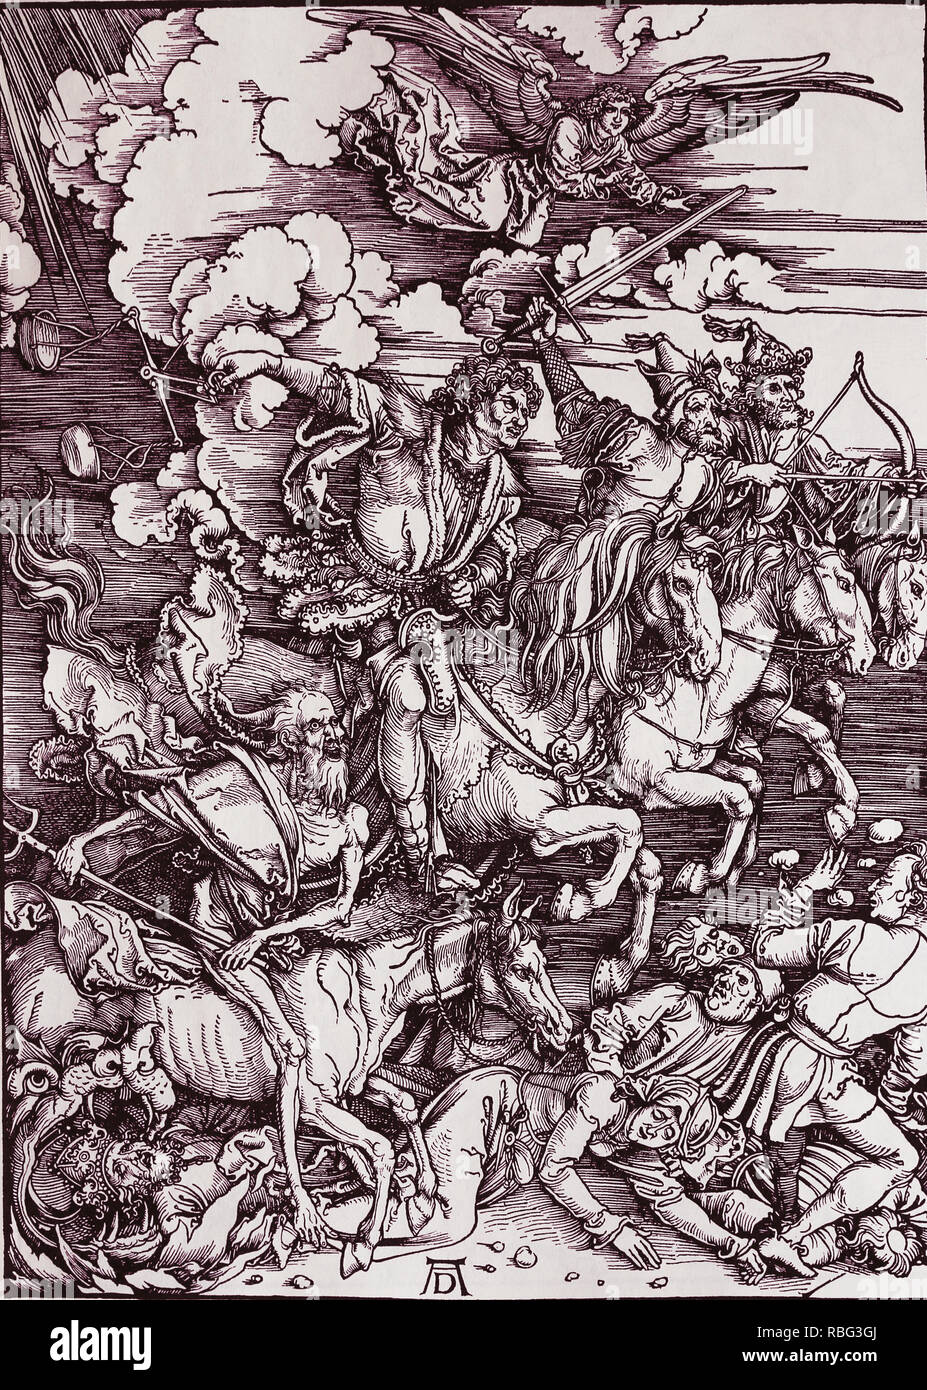 The Four Horsemen of the Apocalypse. Woodcut by Albrecht Durer. 1498. - Stock Image